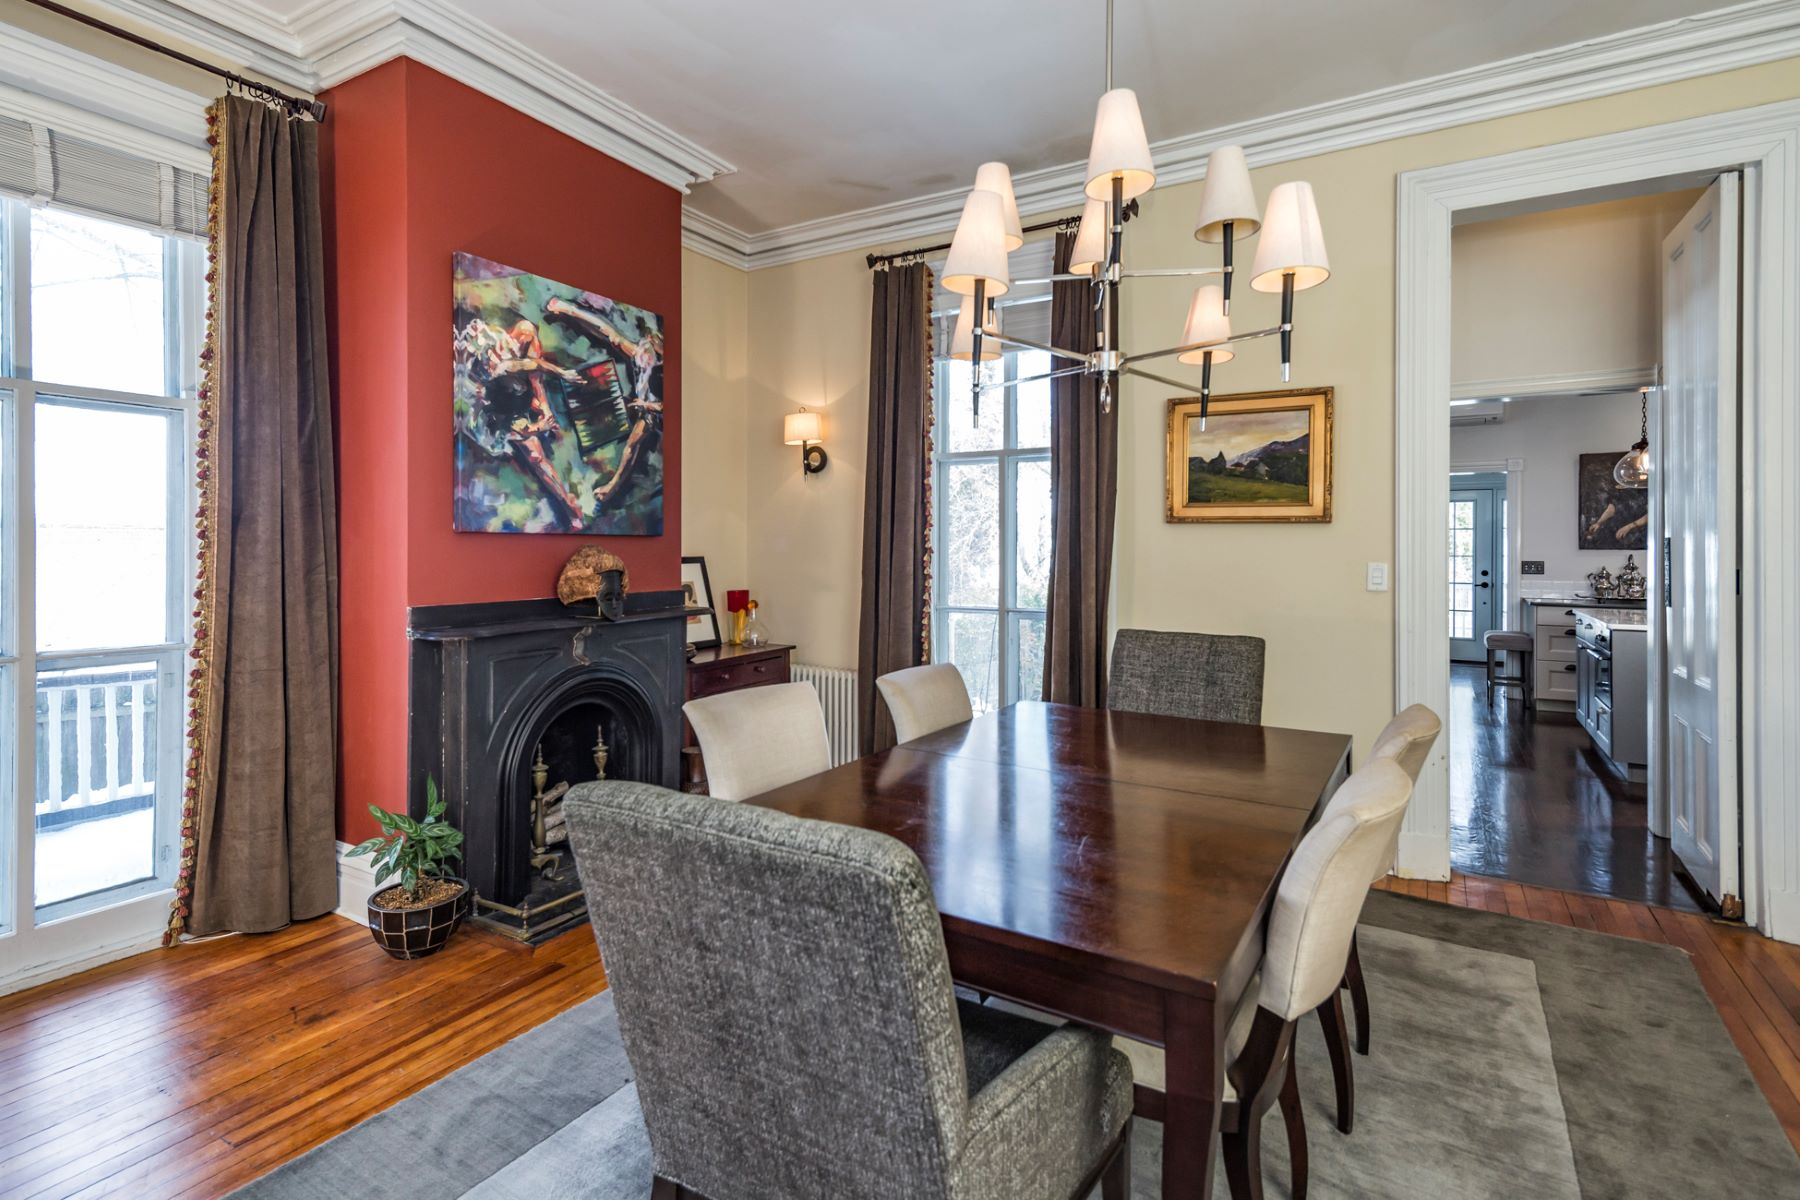 Additional photo for property listing at Victorian Charm and Modern Day Comforts 12 Murray Place, Princeton, New Jersey 08540 United States